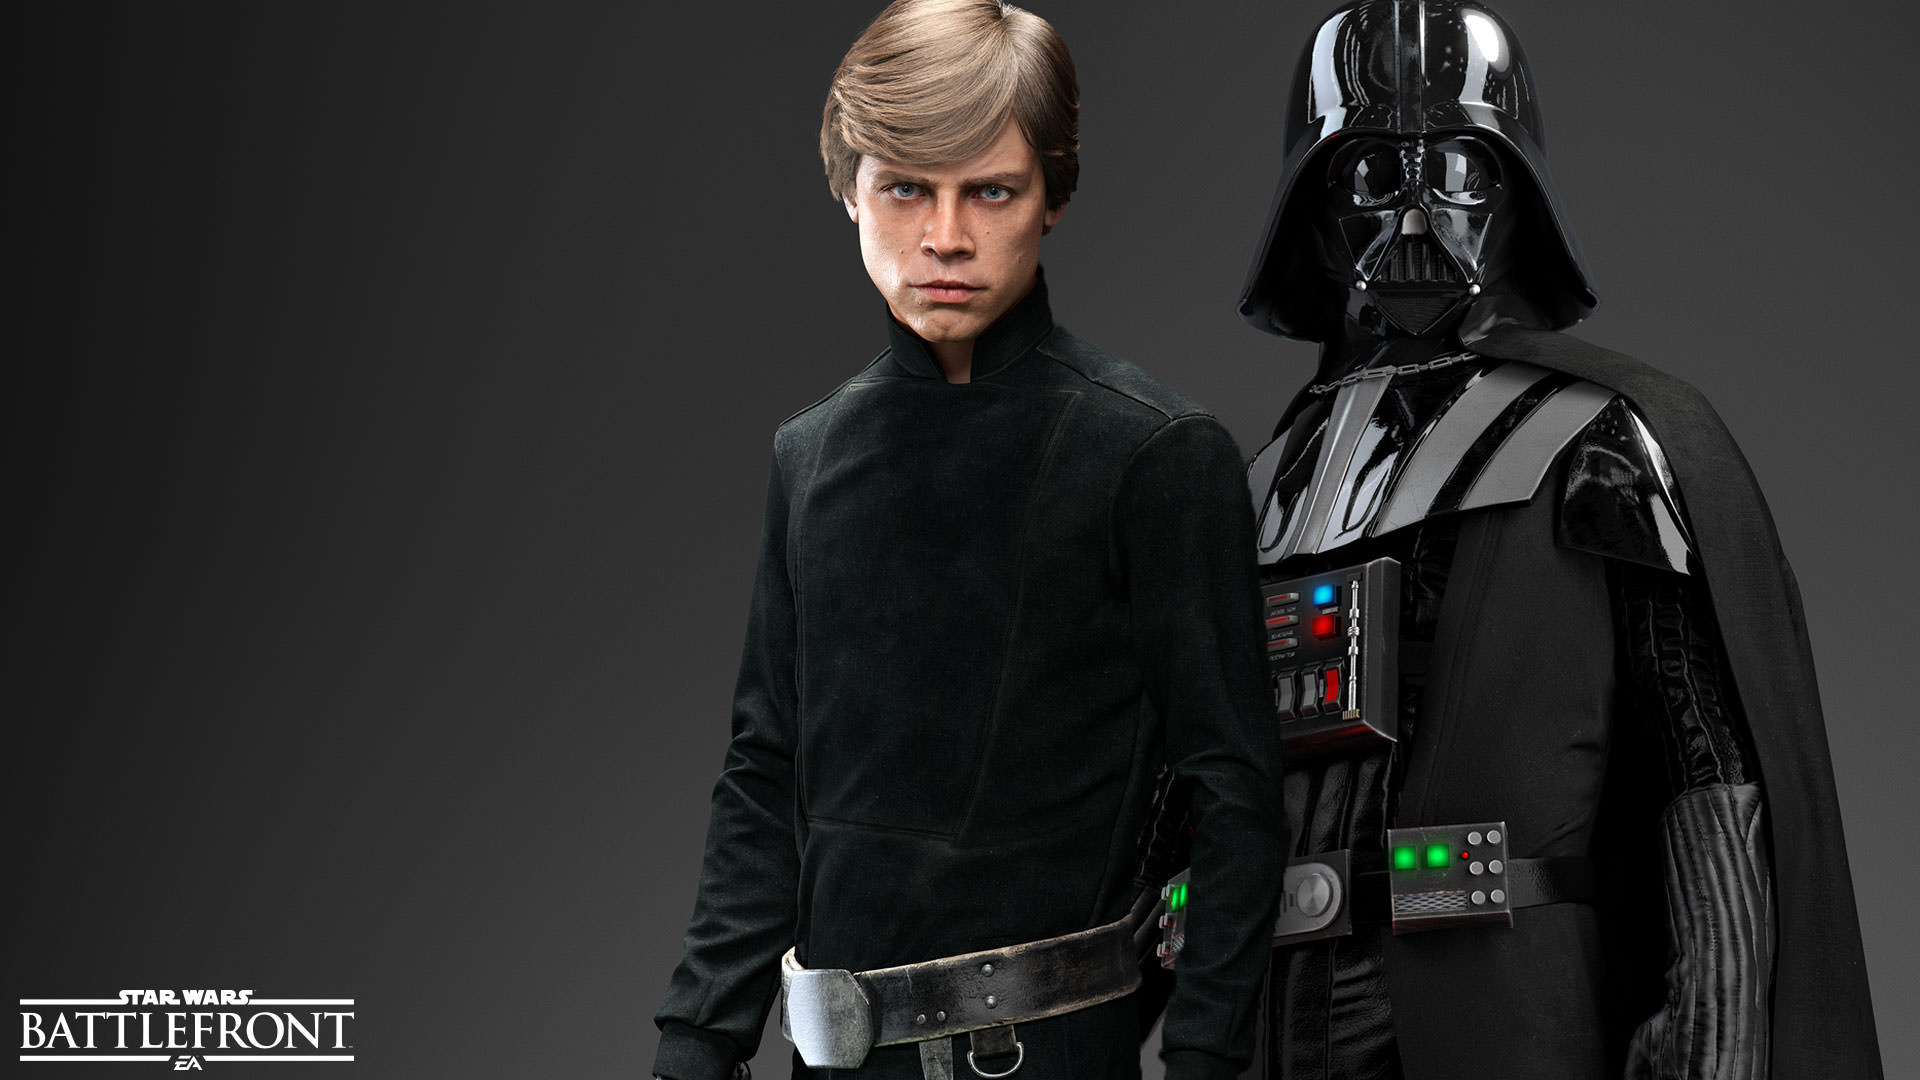 Star Wars Battlefront Heroes and Villains Revealed - 2015-10-20 12:24:54